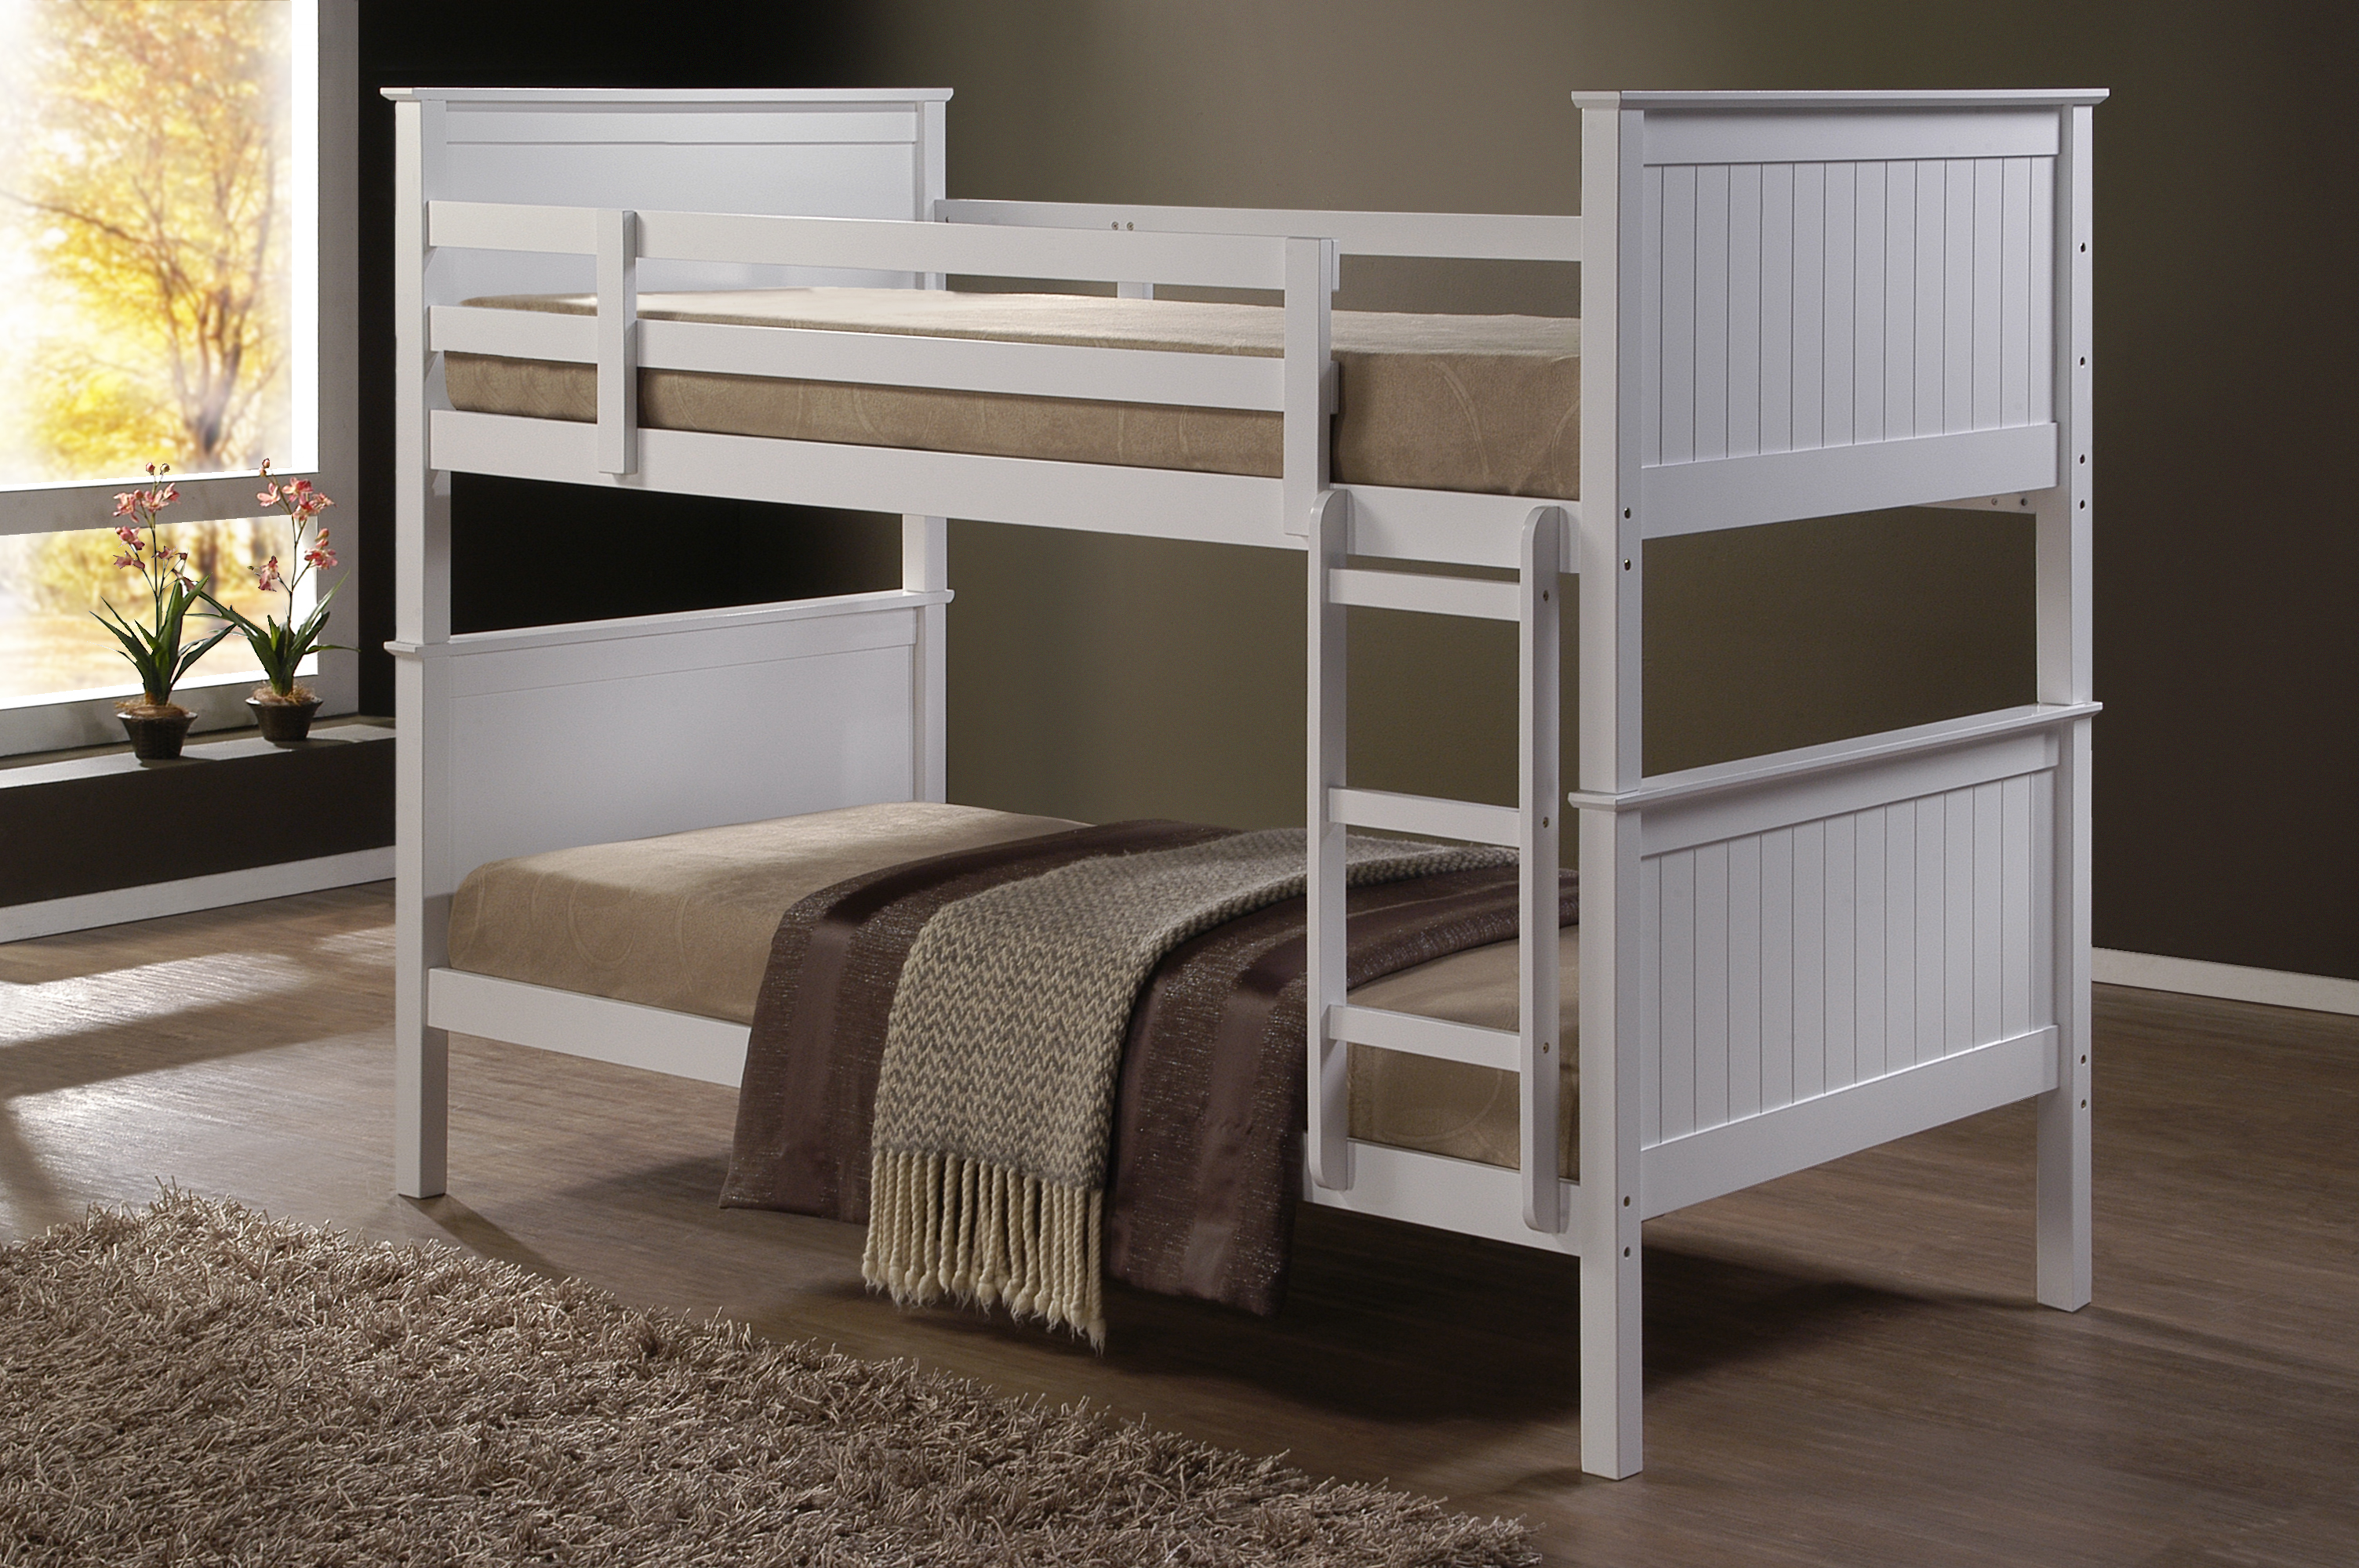 Single Bunk Bed : Jade Fixed Ladder White Single Bunk Beds